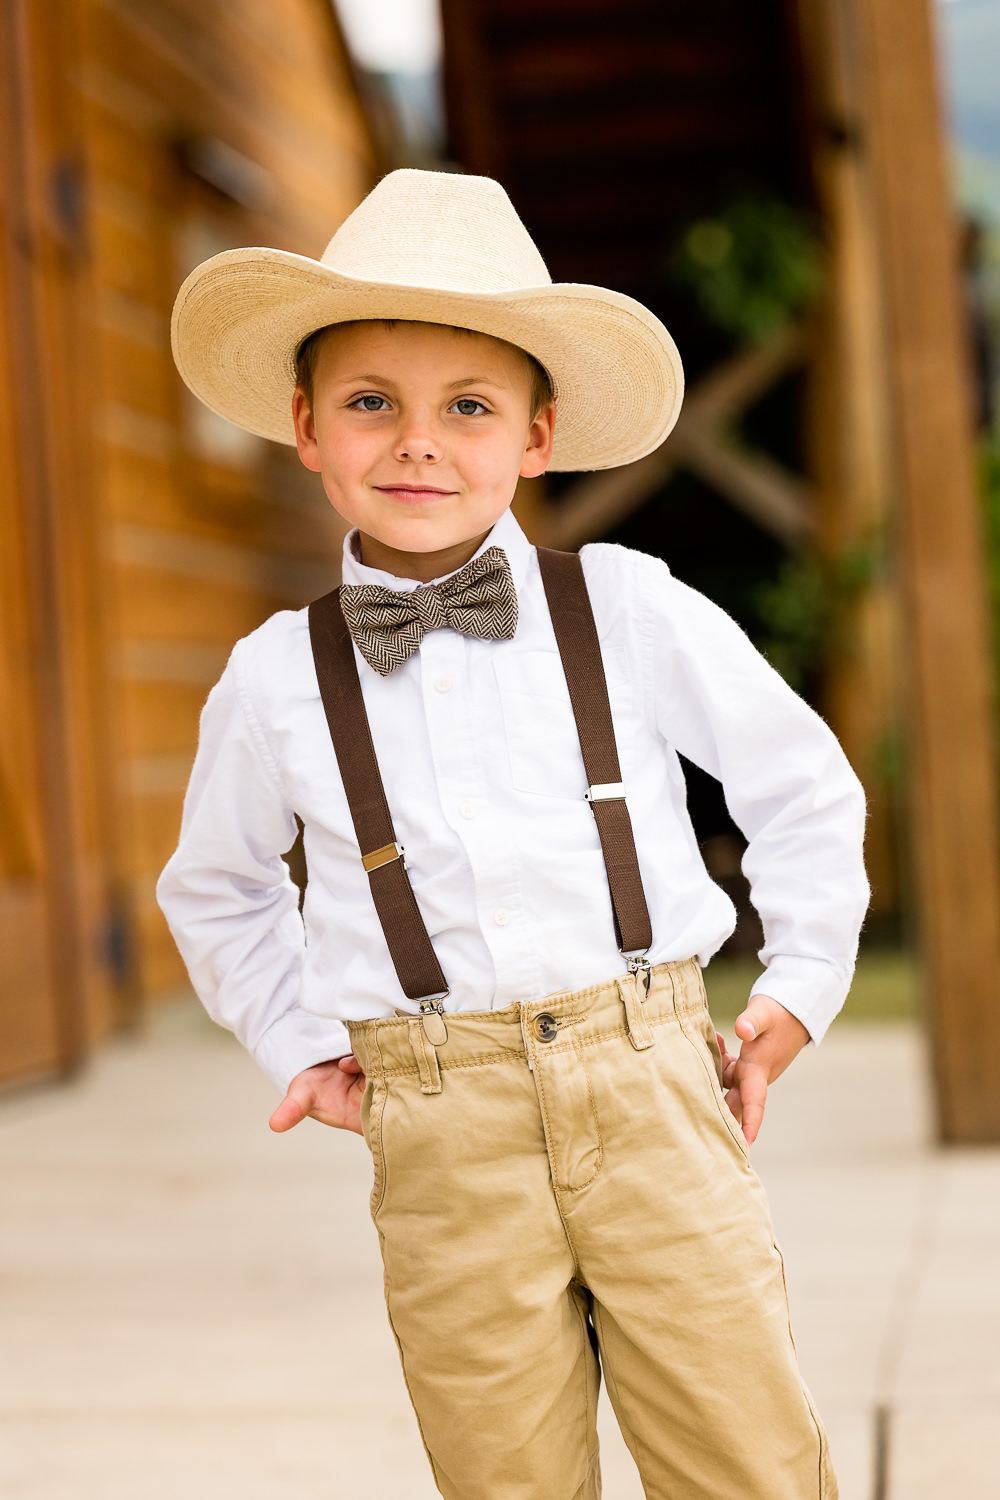 bozeman-hart-ranch-wedding-ringbearer-in-cowboy-hat.jpg